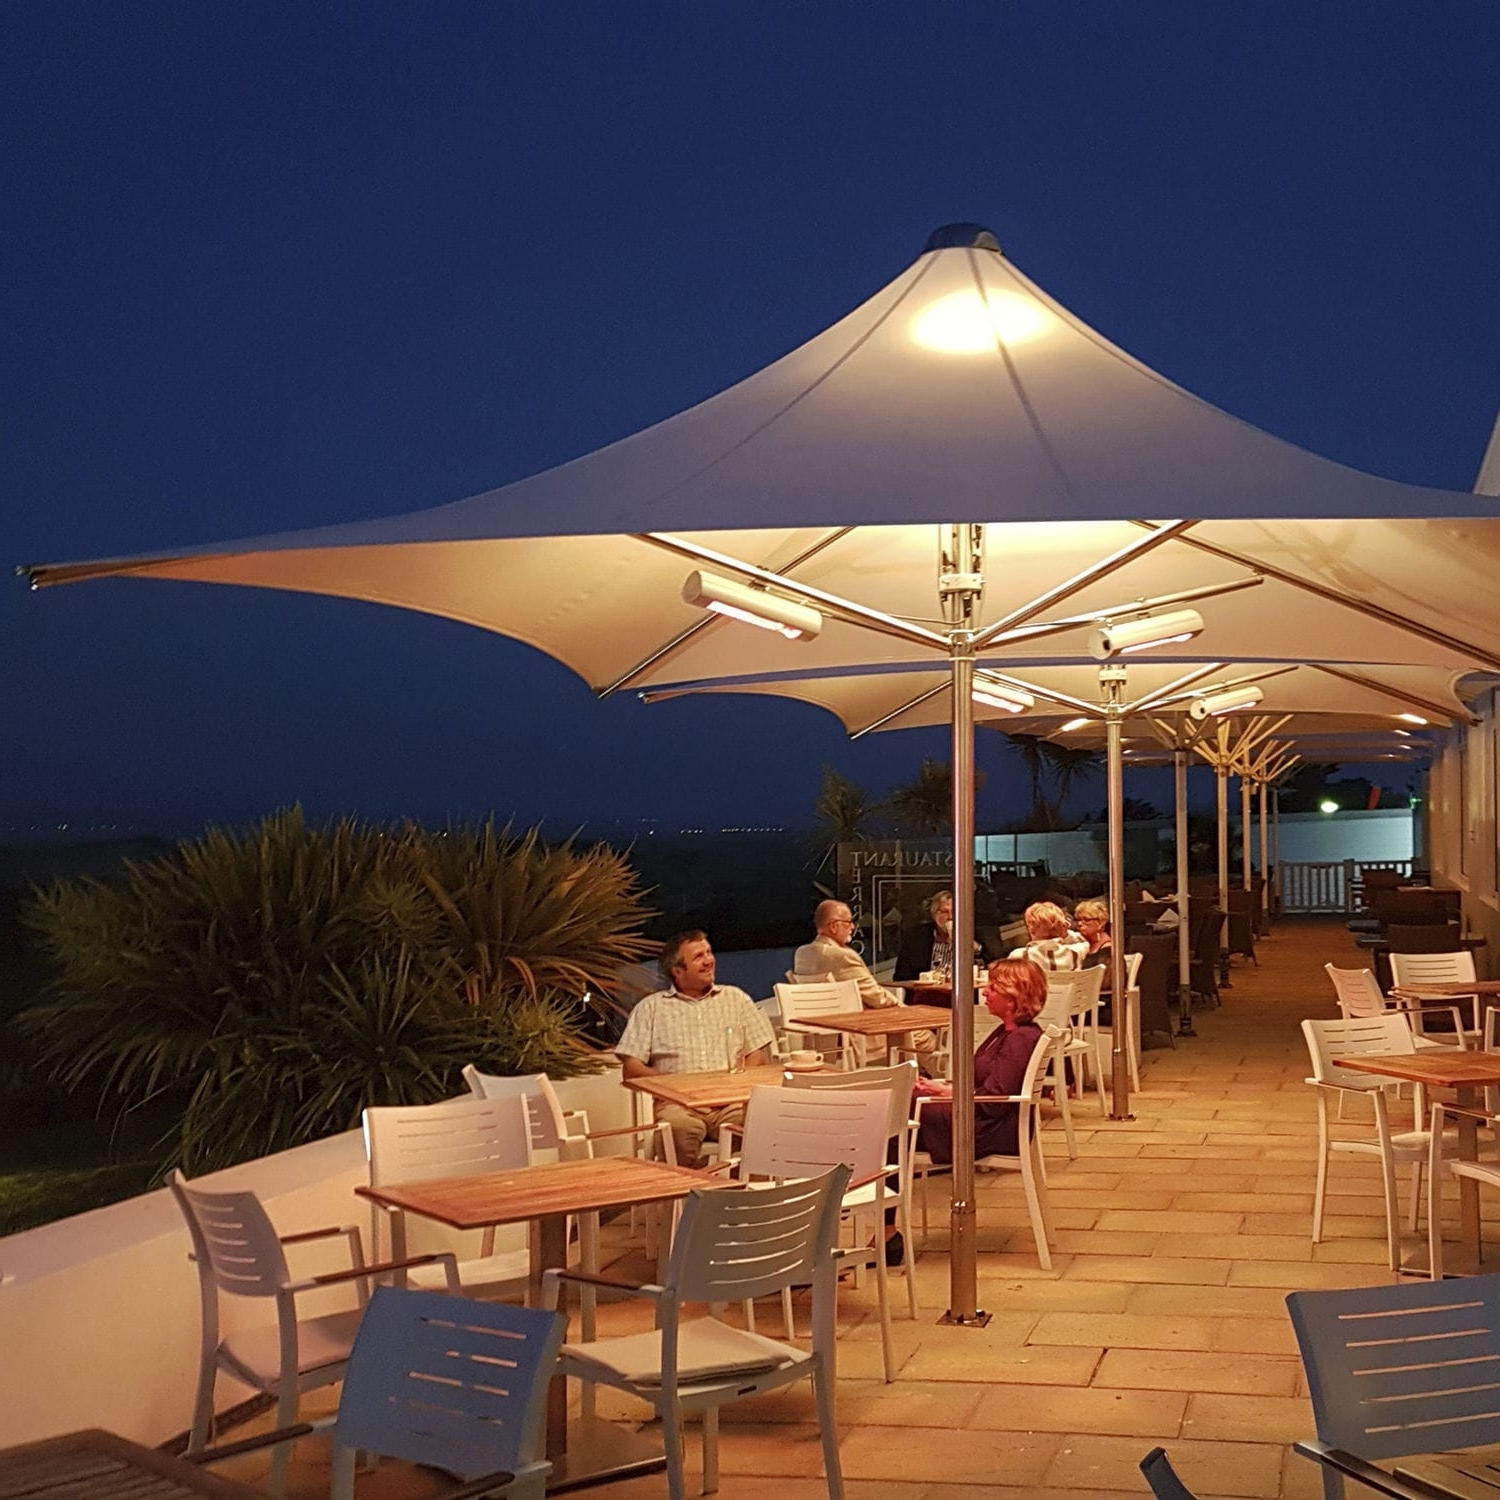 Preferred Commercial Patio Umbrella / Stainless Steel / Pvc / Wind Resistant In Patio Umbrellas For Windy Locations (View 14 of 20)